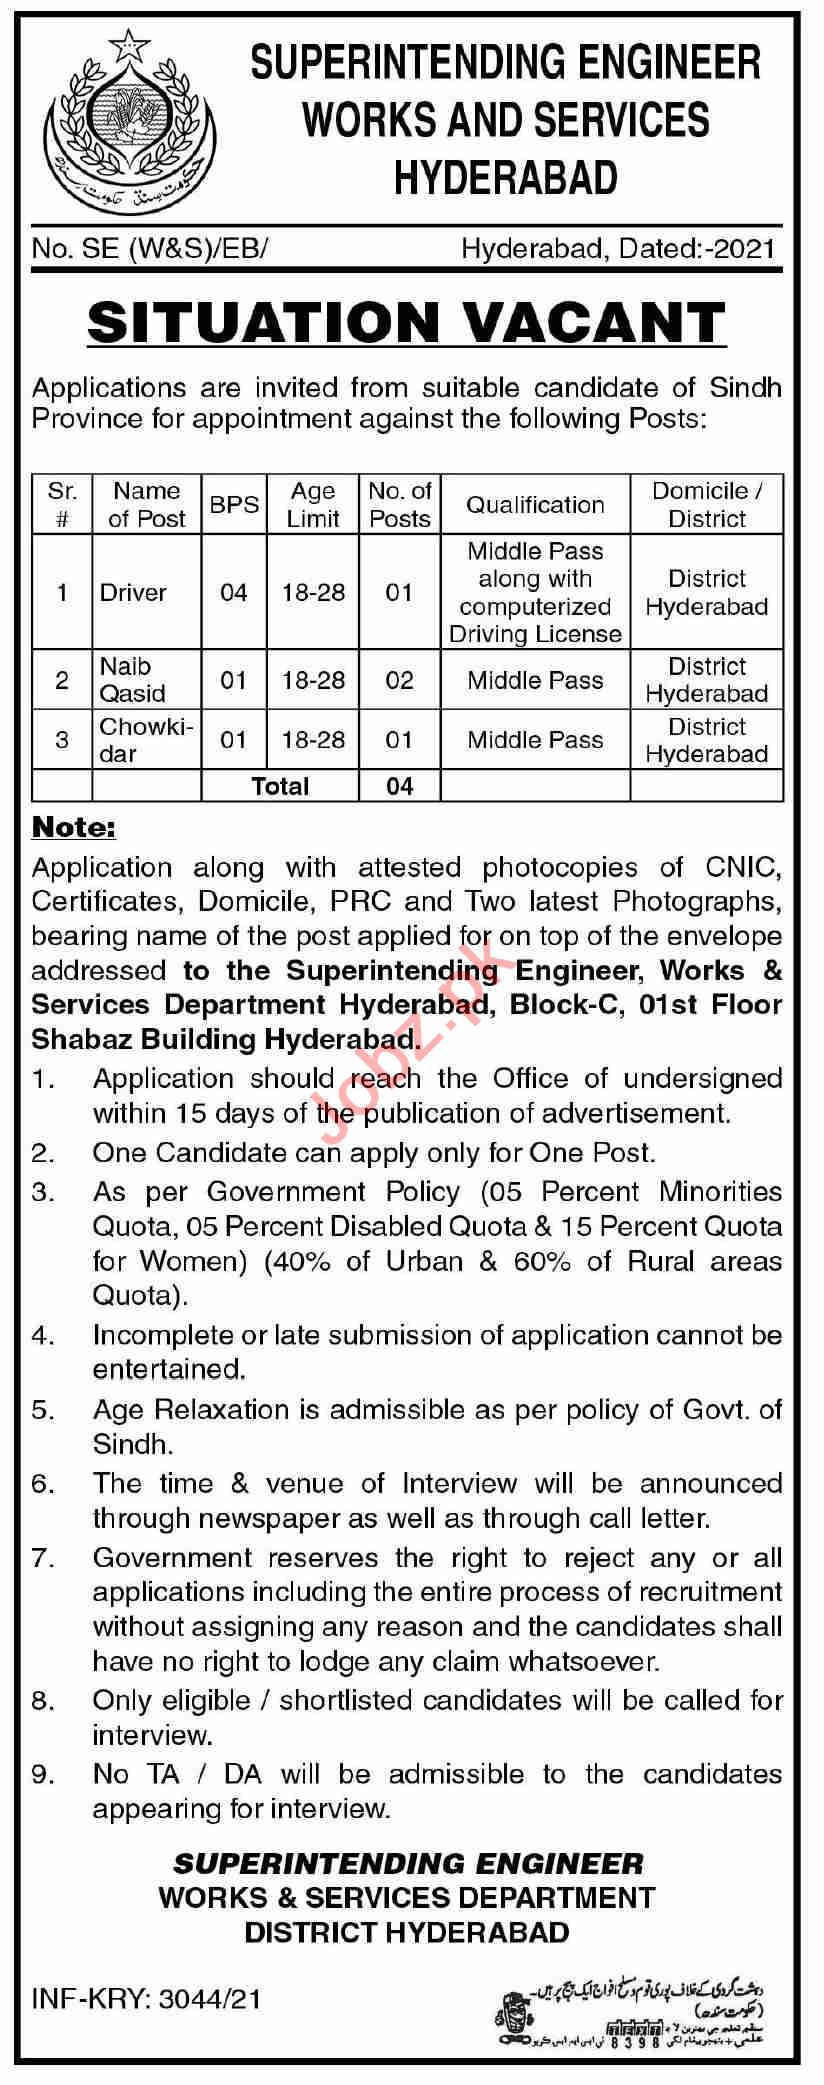 Works & Services Department Hyderabad Jobs 2021 for Drivers